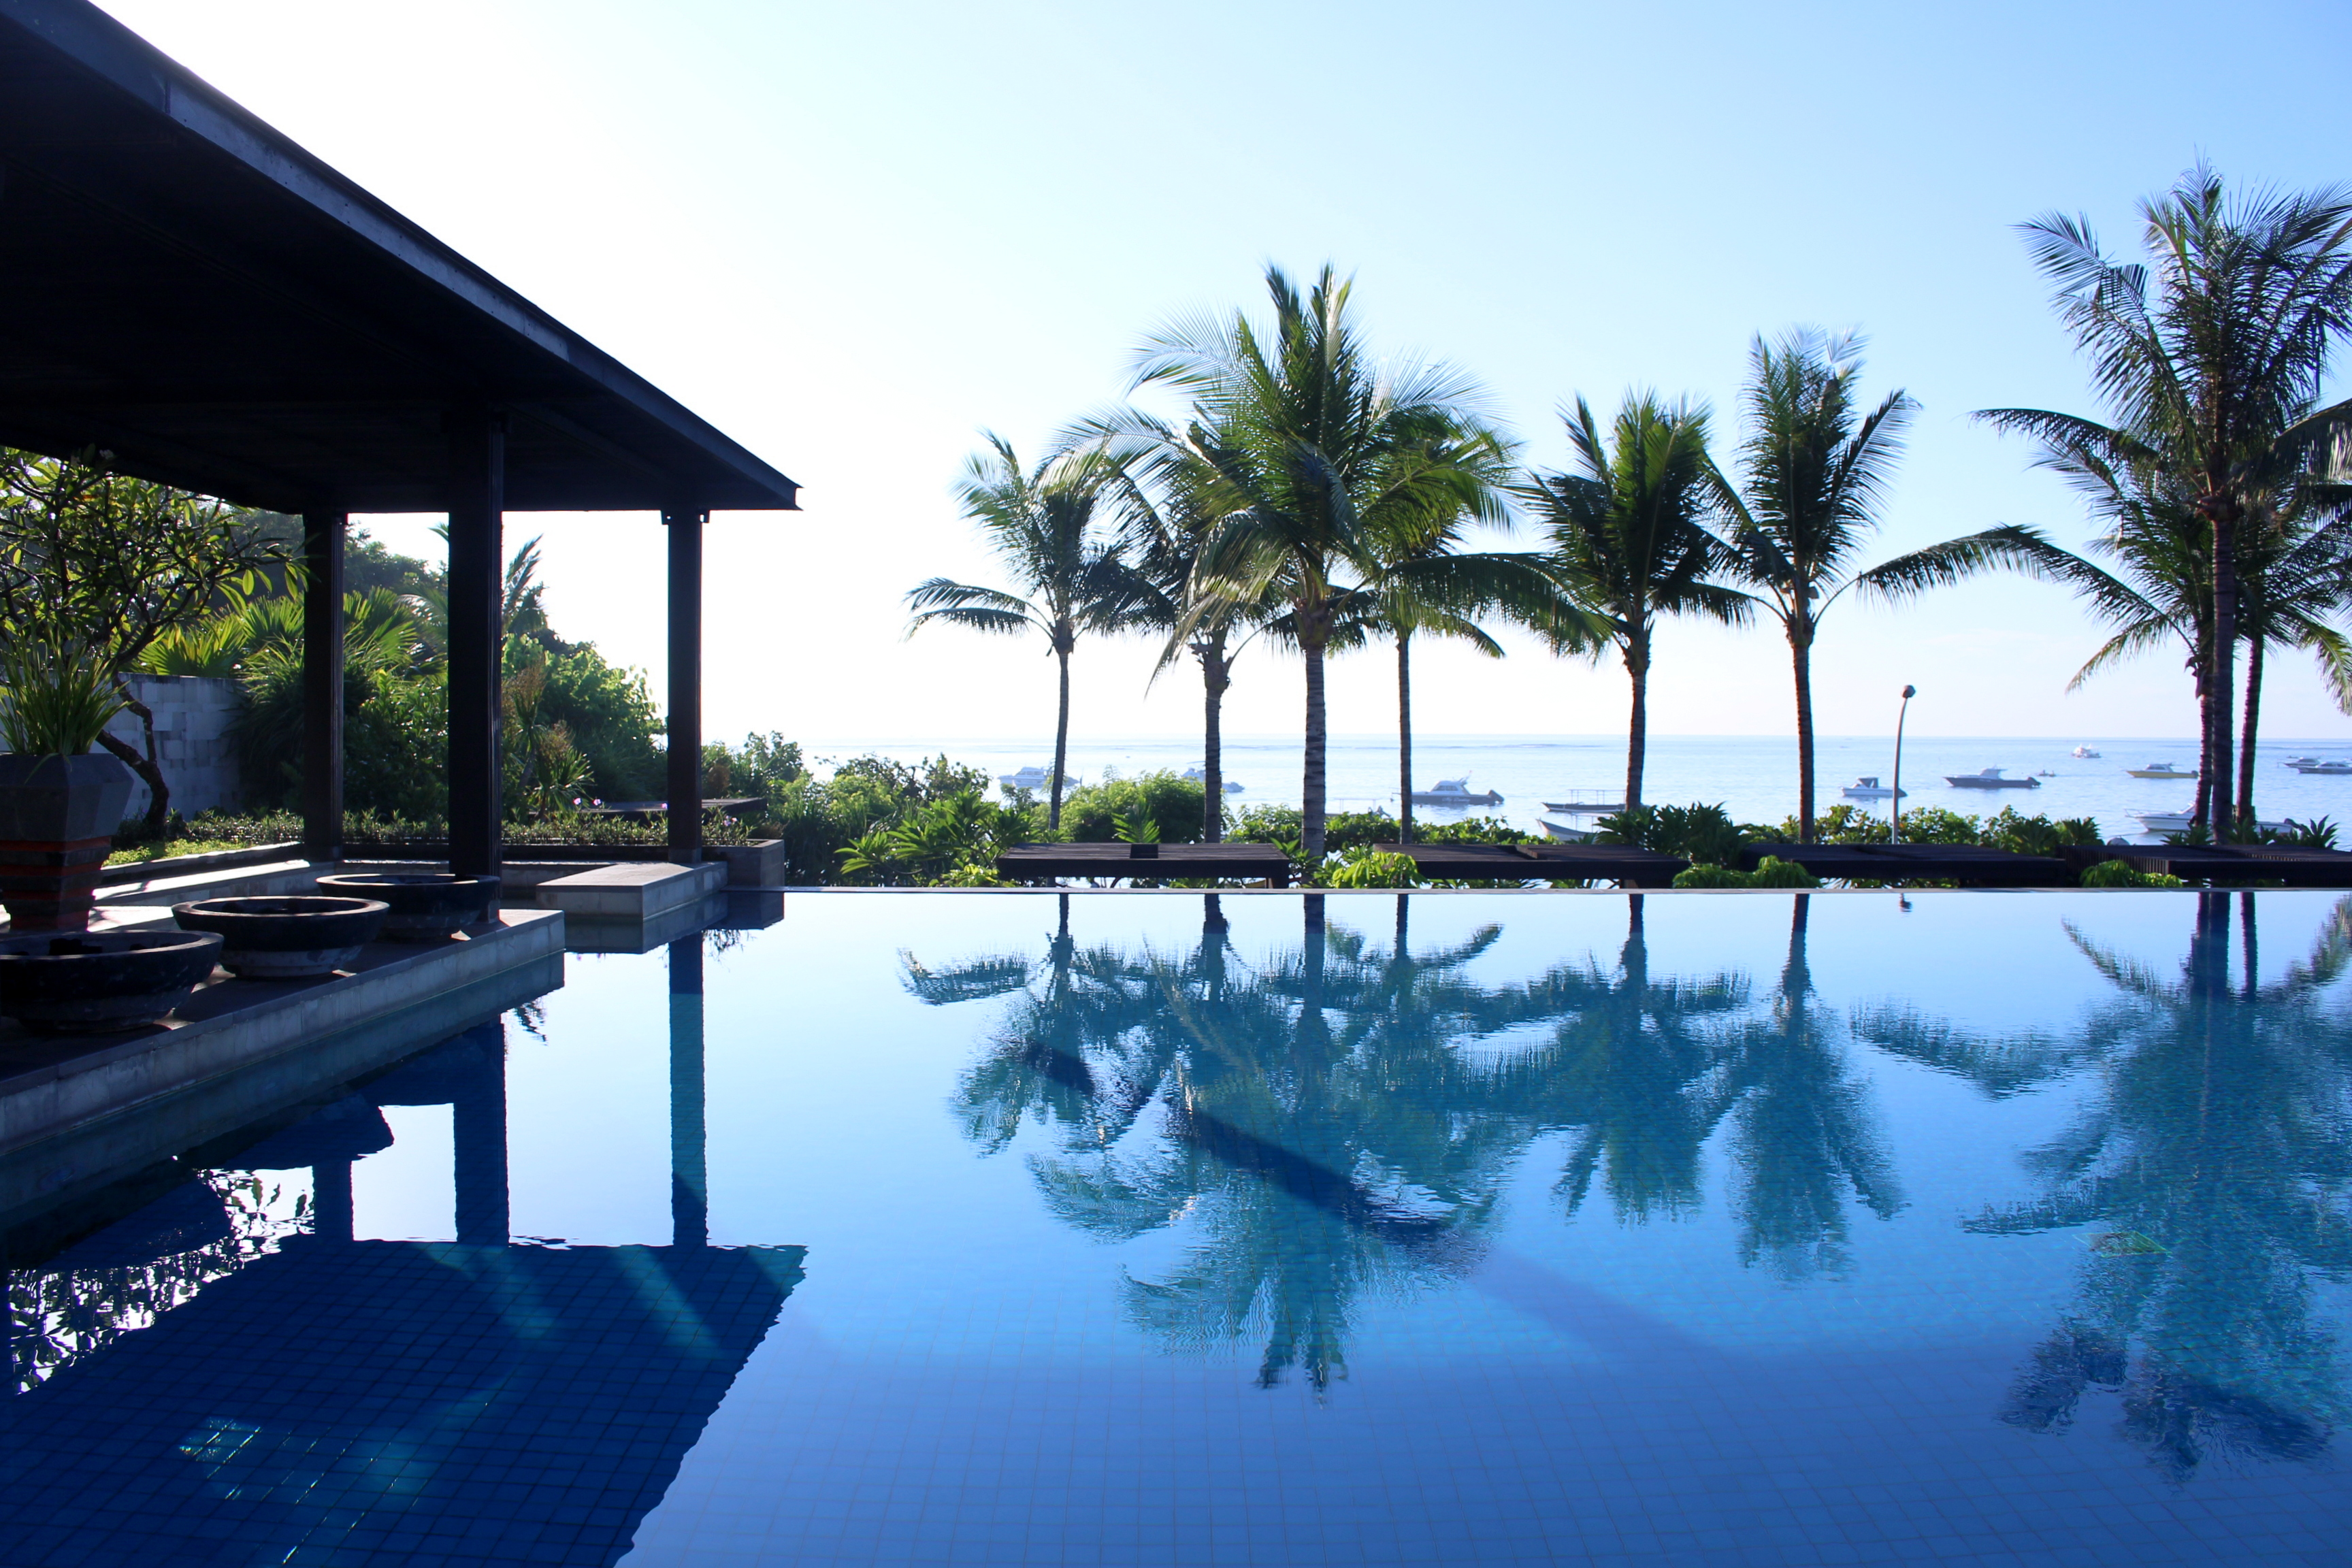 Hotel Review Fairmont Sanur Bali The Beach Resort Oasis Away From The Bustling Seminyak And Kuta In Bali The Ranting Panda